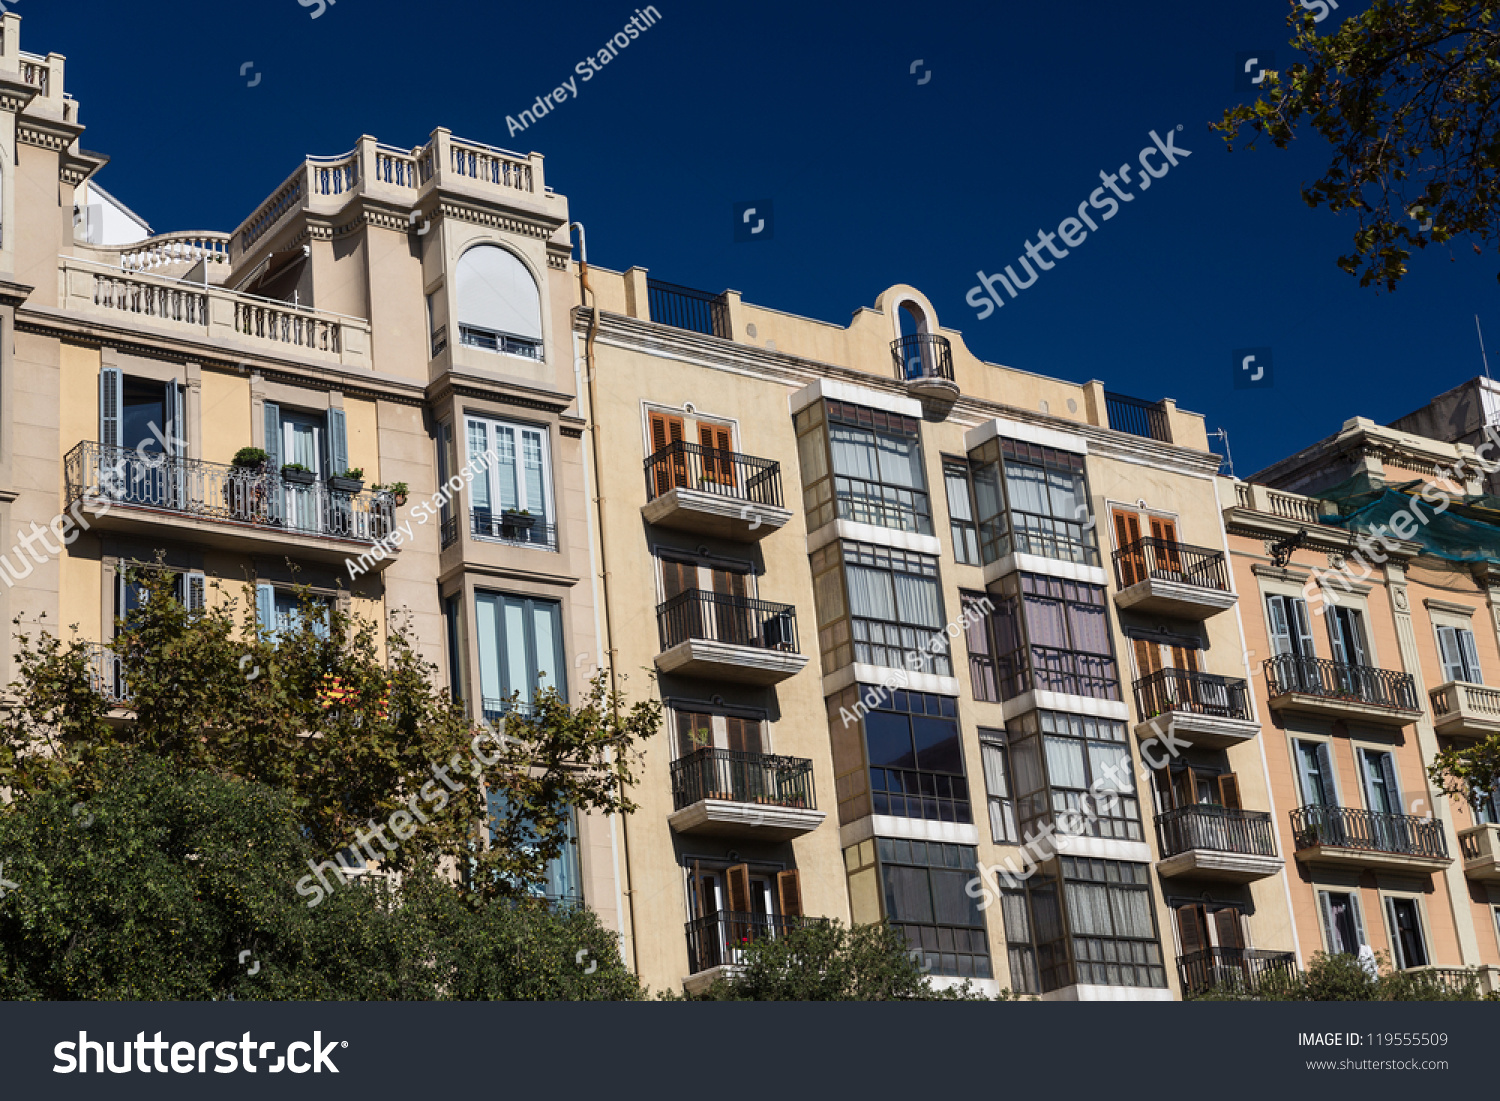 Buildings 39 facades of great architectural interest in the city of barcelona spain stock photo - Apartamentos dv barcelona ...